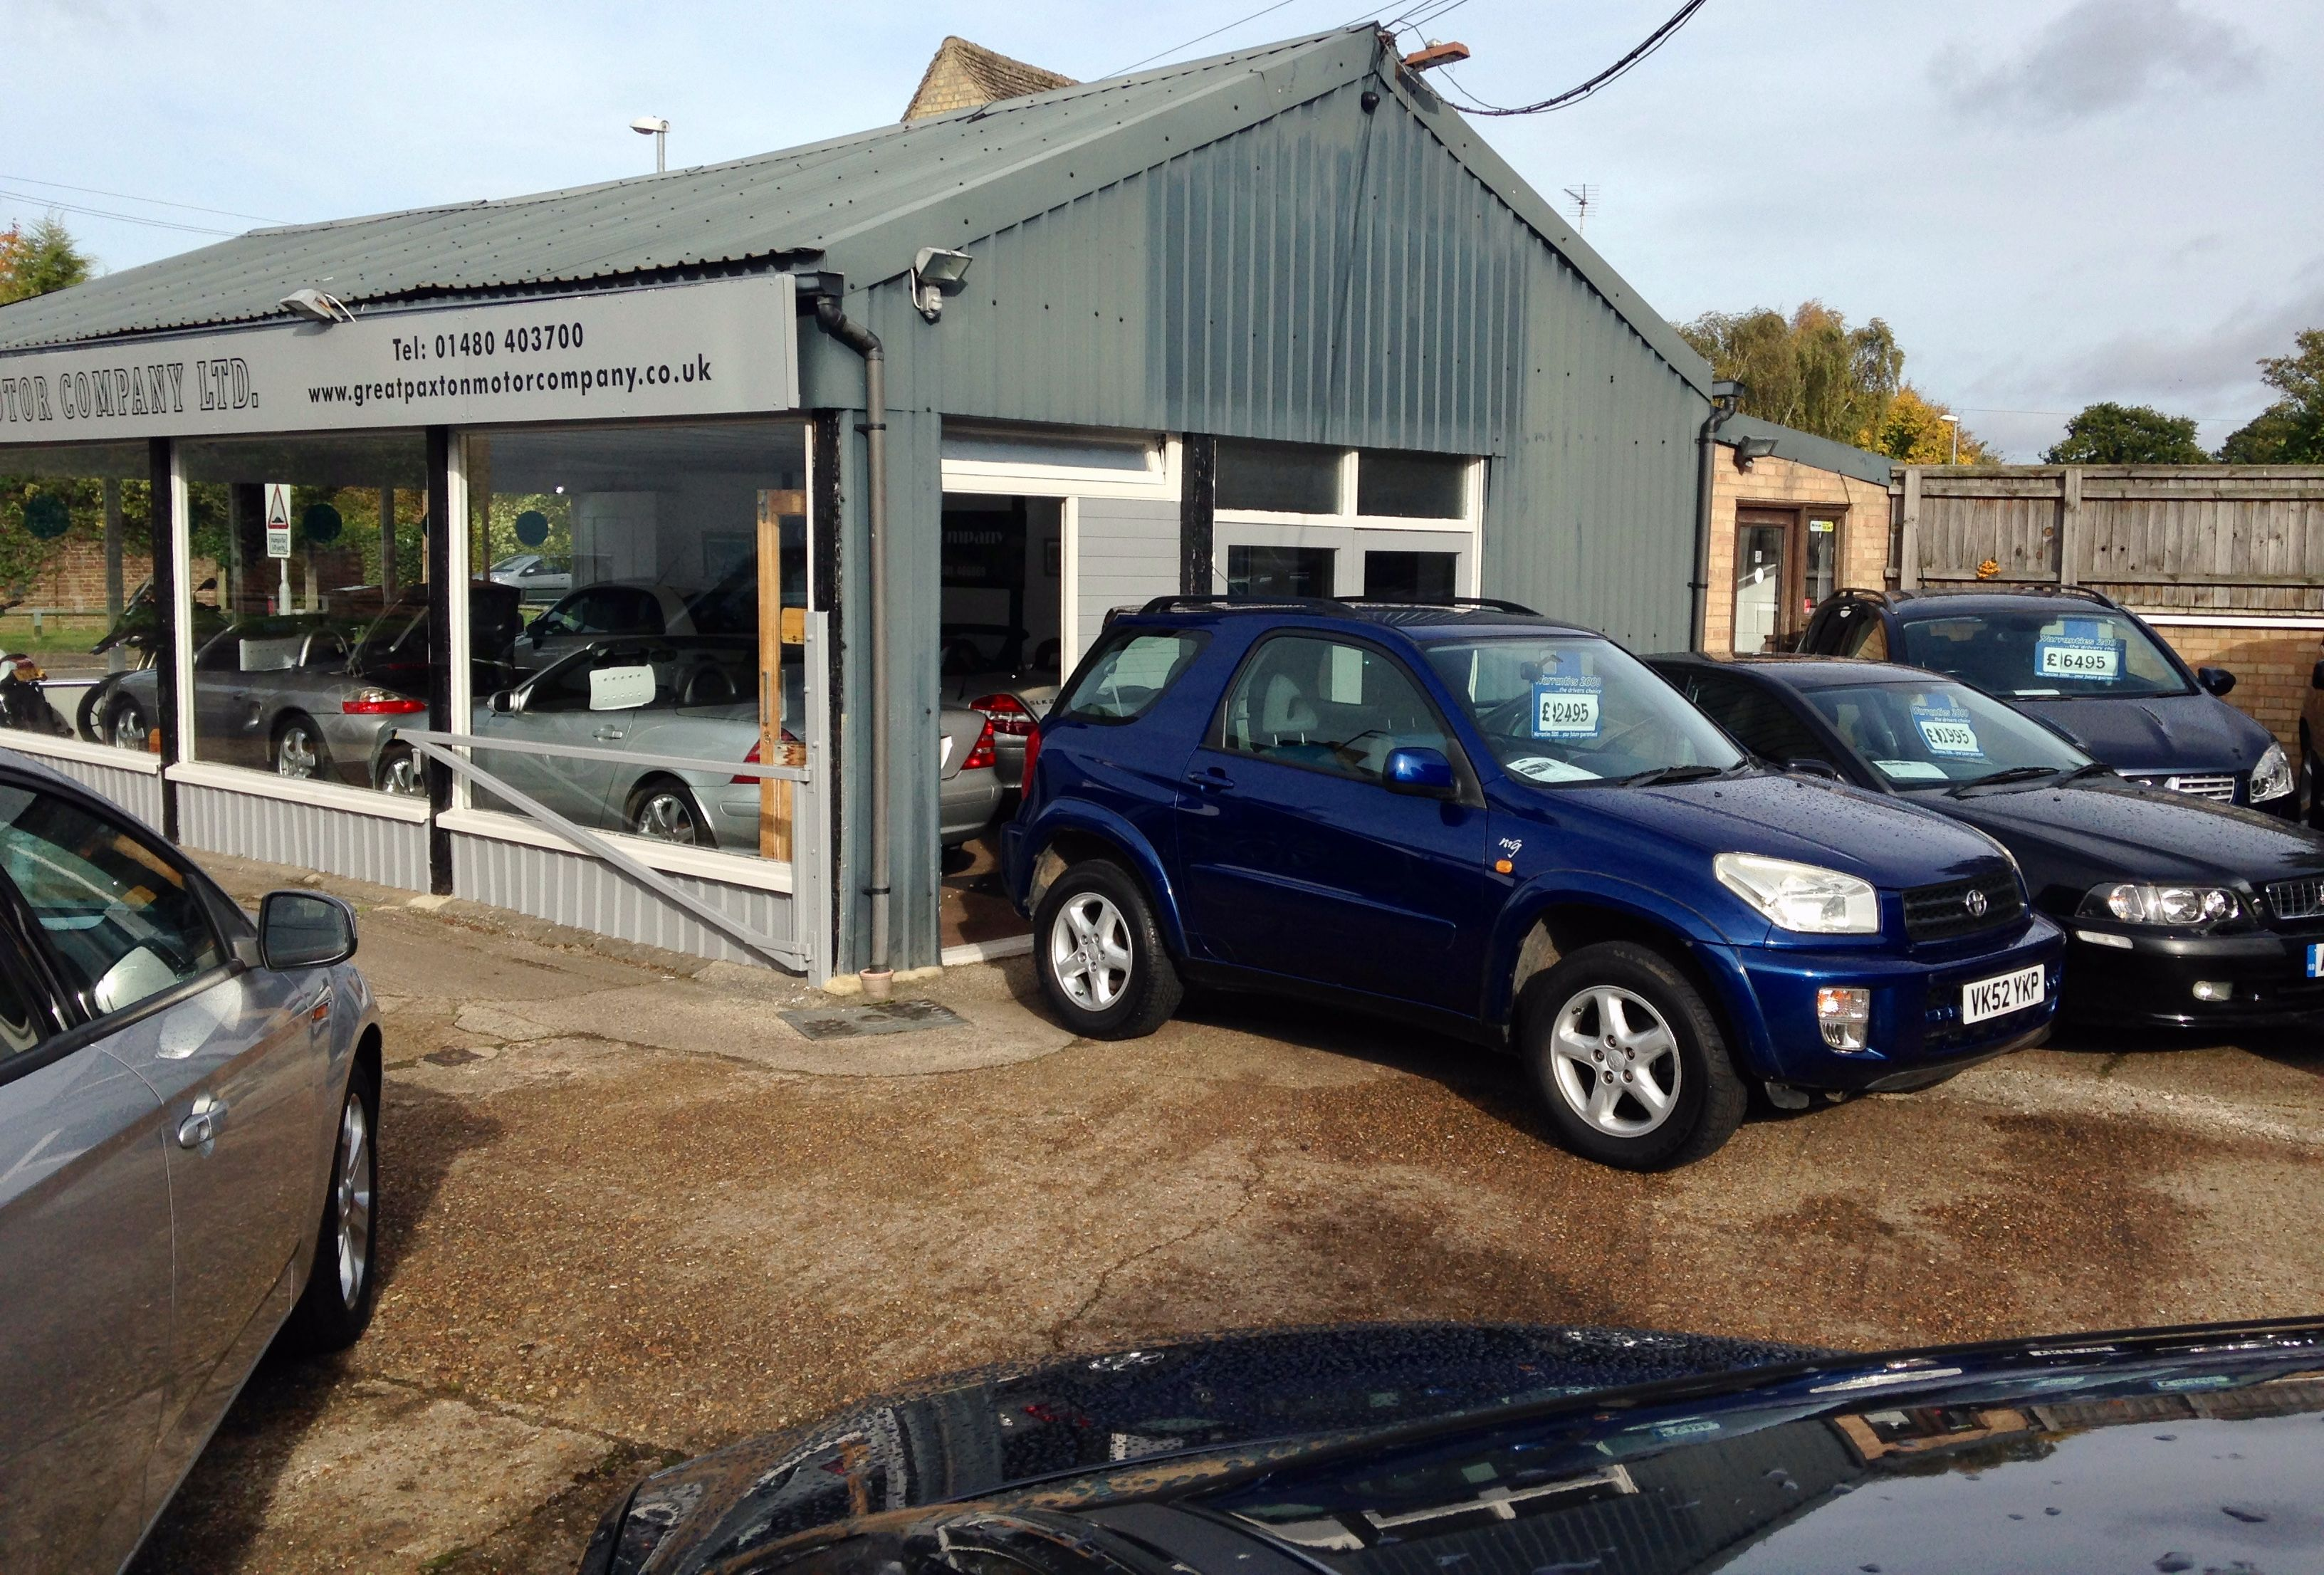 Car for Sale Cambridge Awesome Used Cars St Neots Second Hand Cars Cambridgeshire Great Paxton